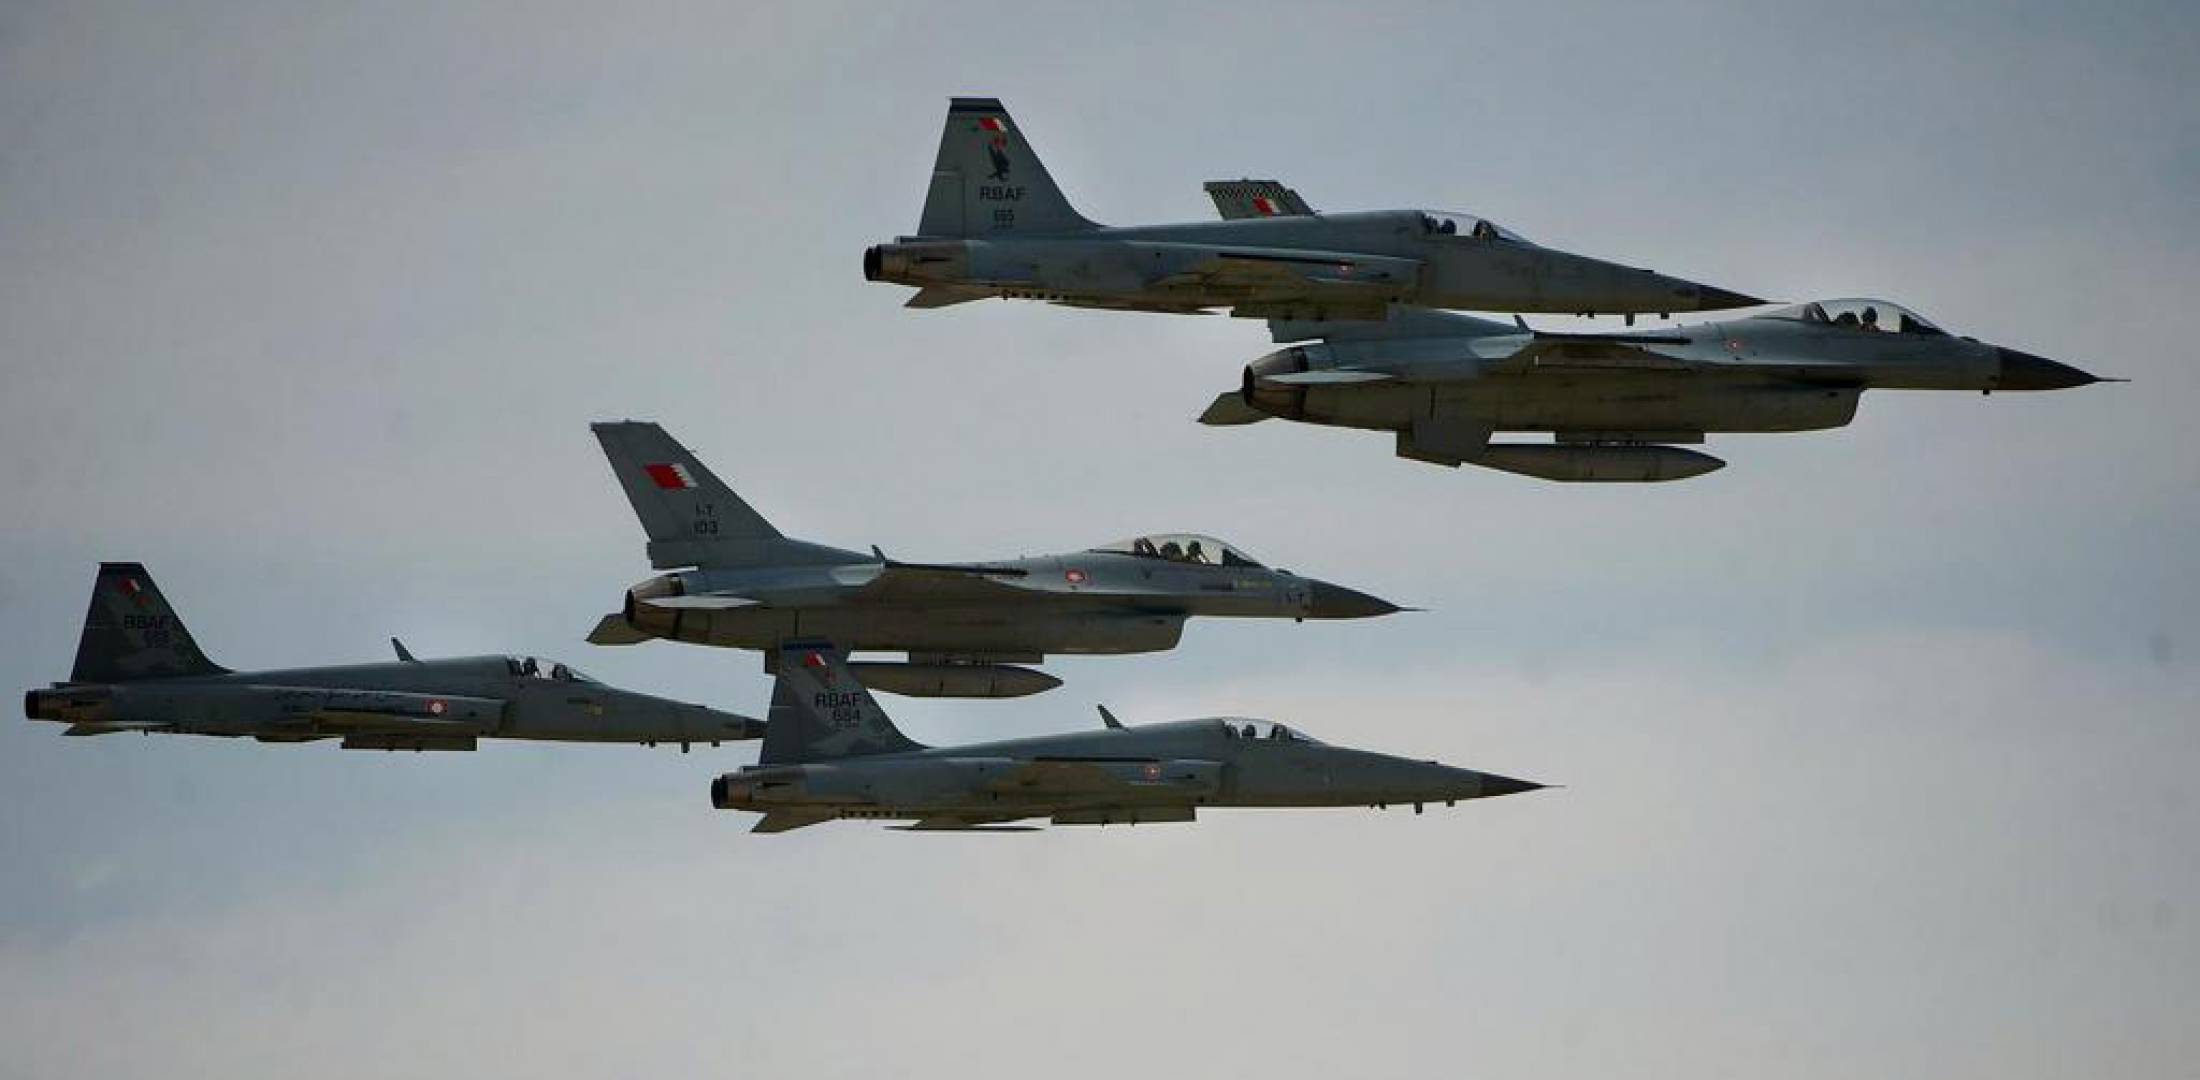 The first modernized Taiwanese fighter F-16V